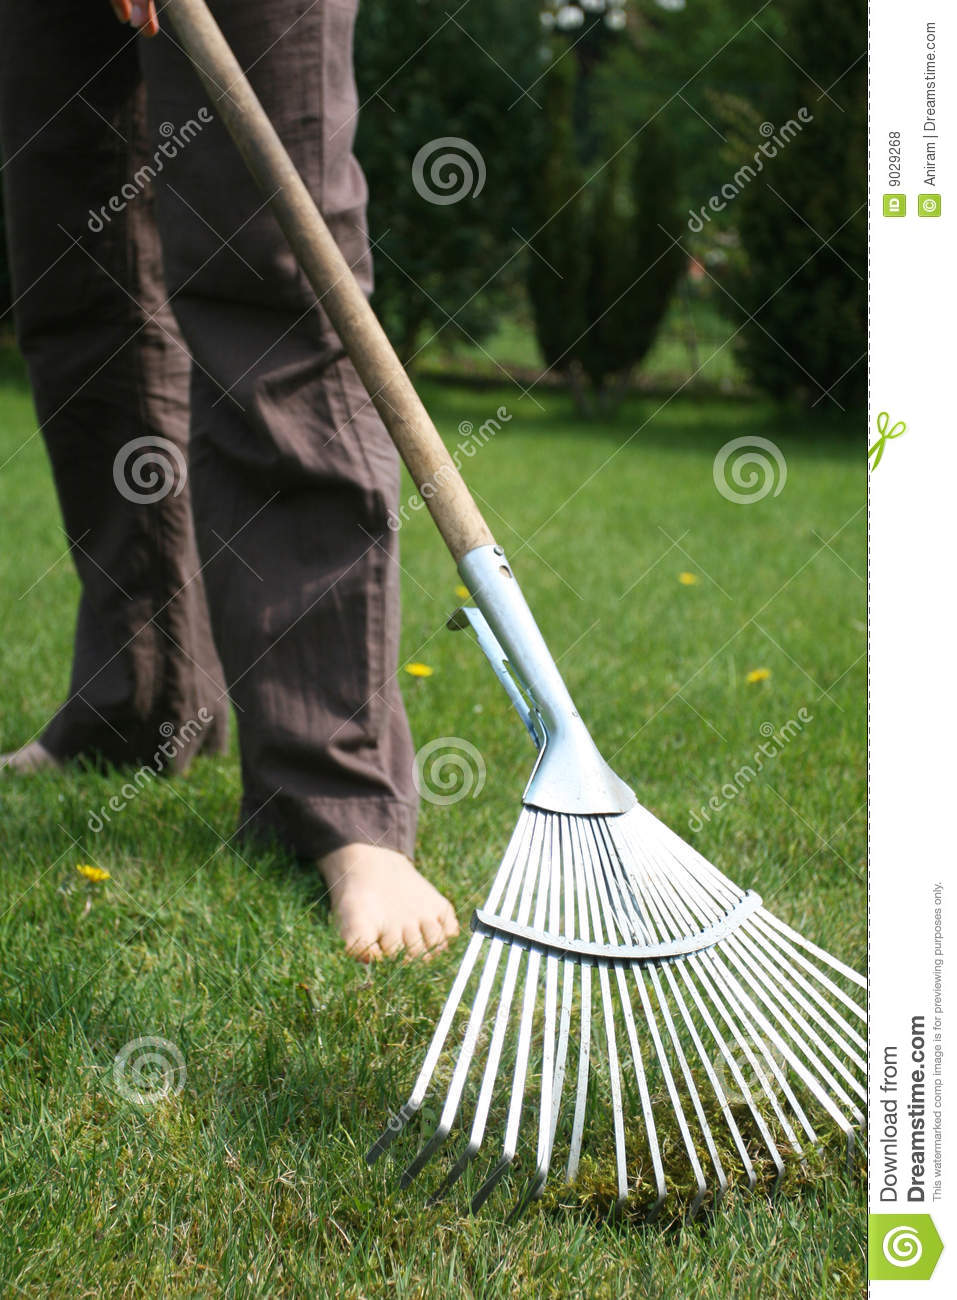 Garden Work Royalty Free Stock Photos Image 9029268